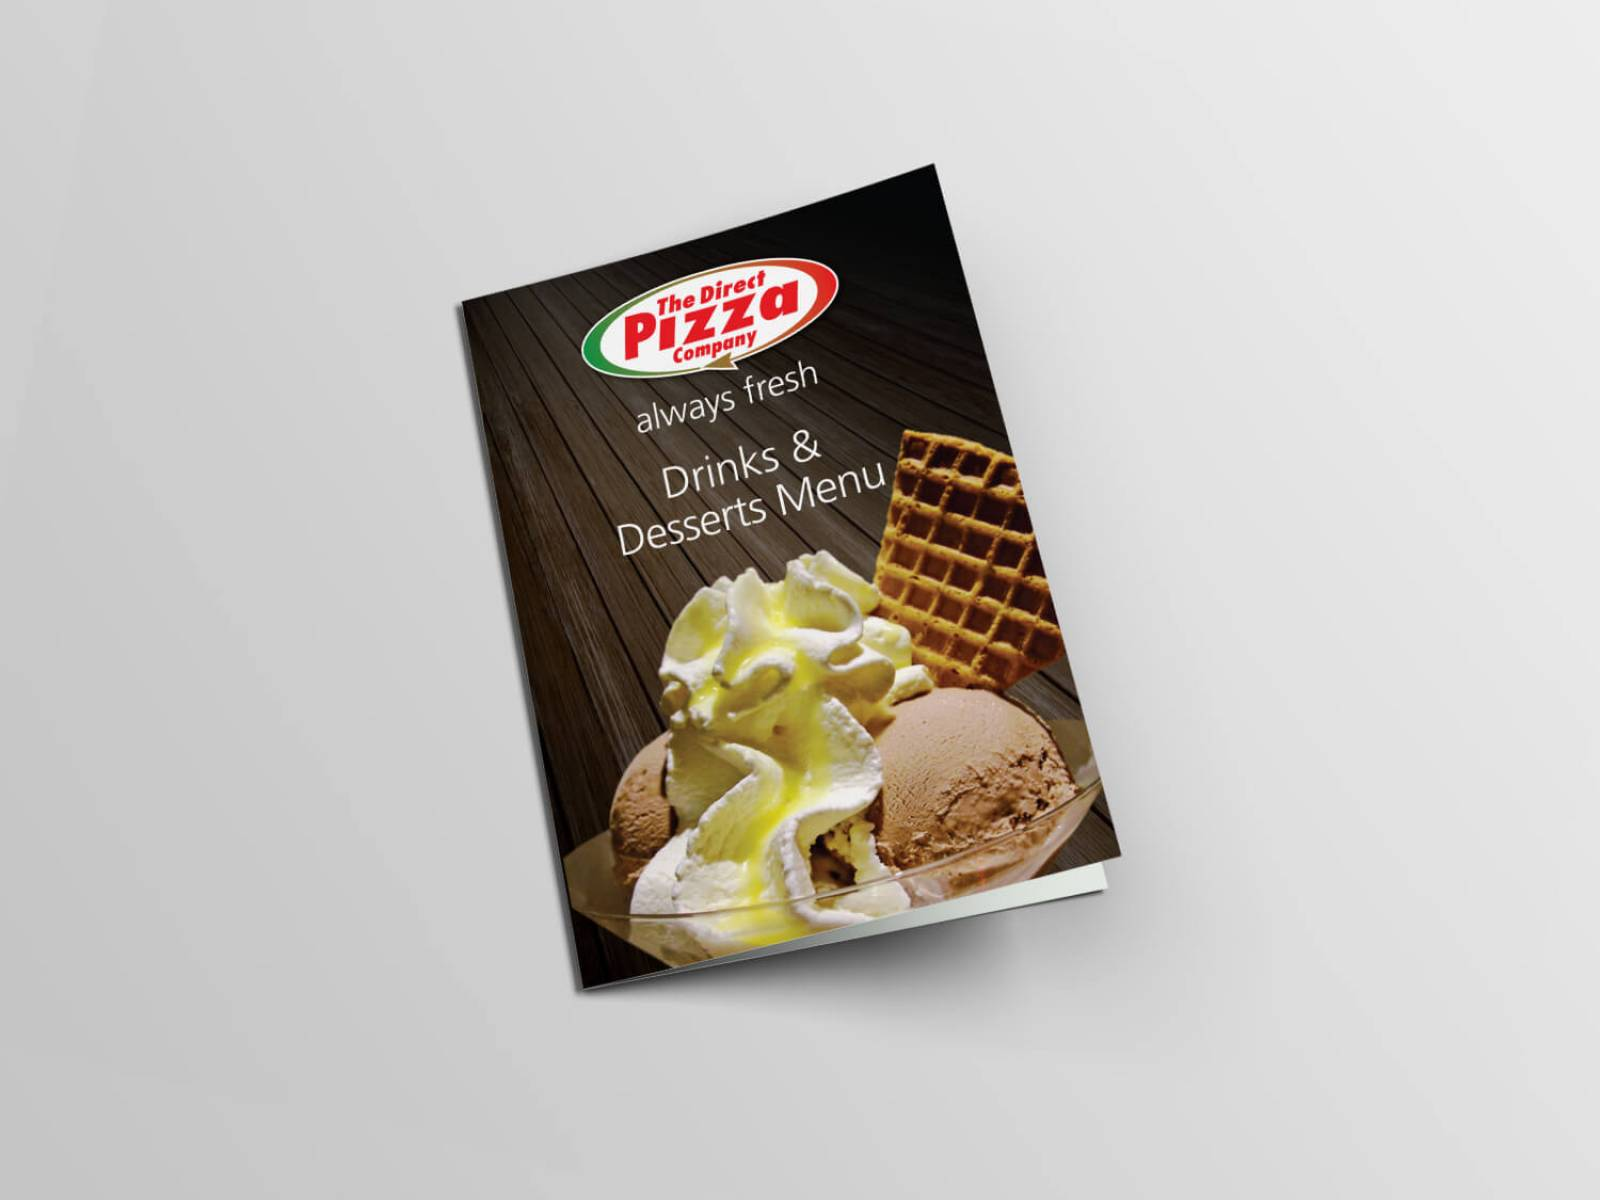 Direct-pizza-flyer-4-design-agency-graphic-design-canterbury.jpg